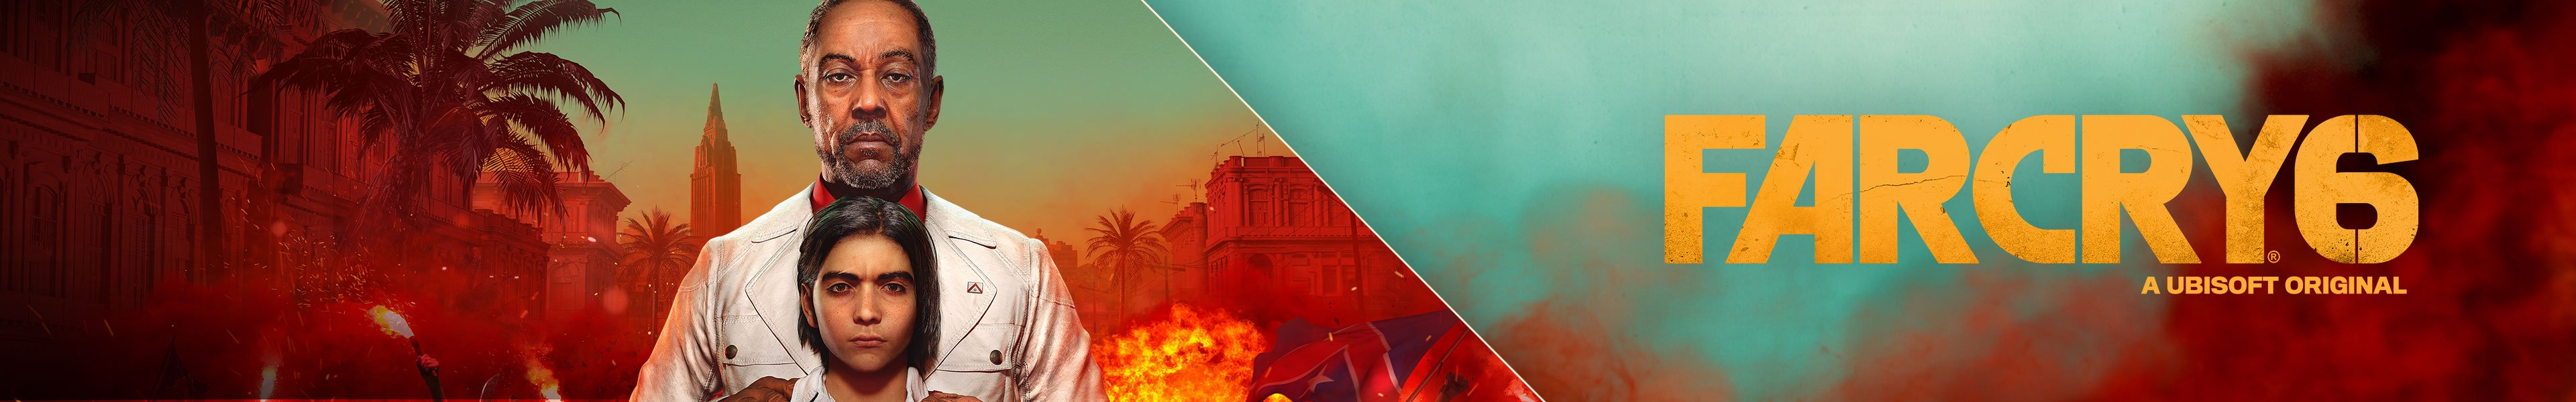 Far Cry 6 Category banner